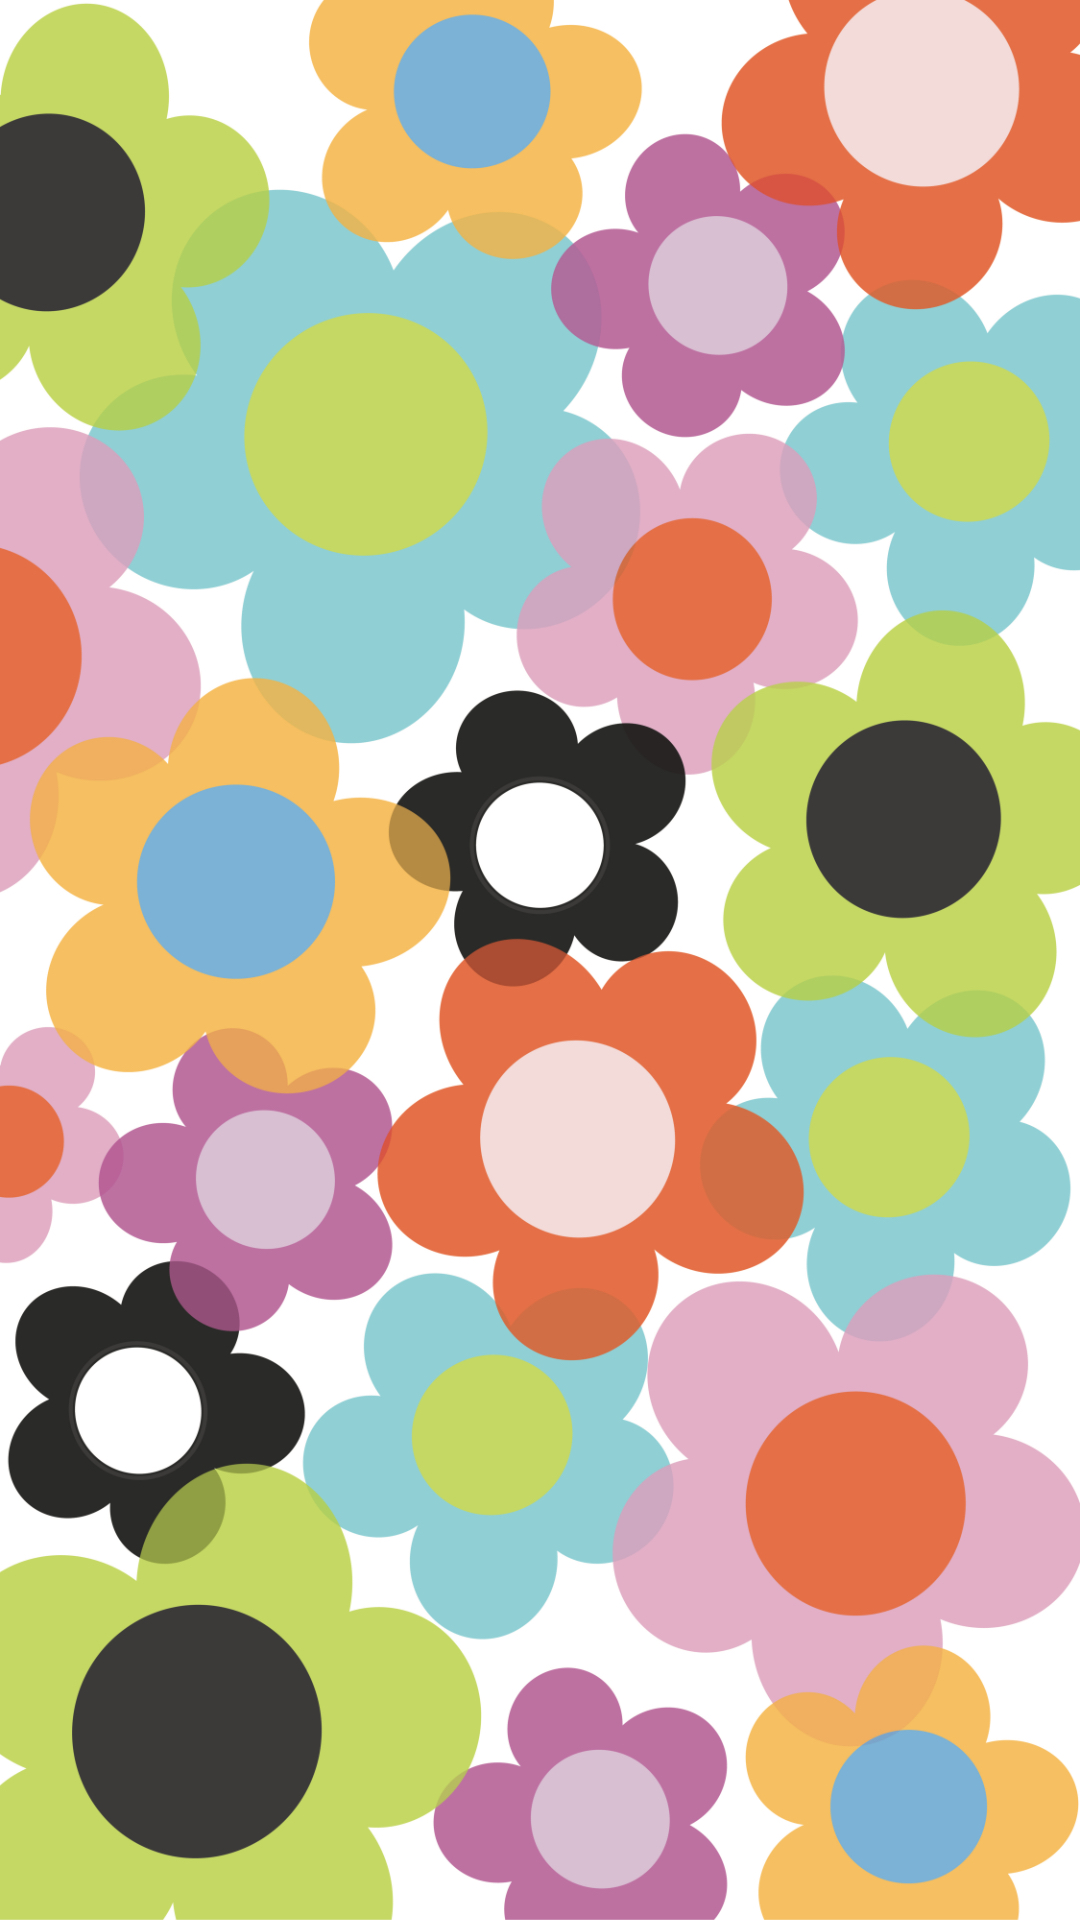 Summer phone wallpaper with multi-color flower petals